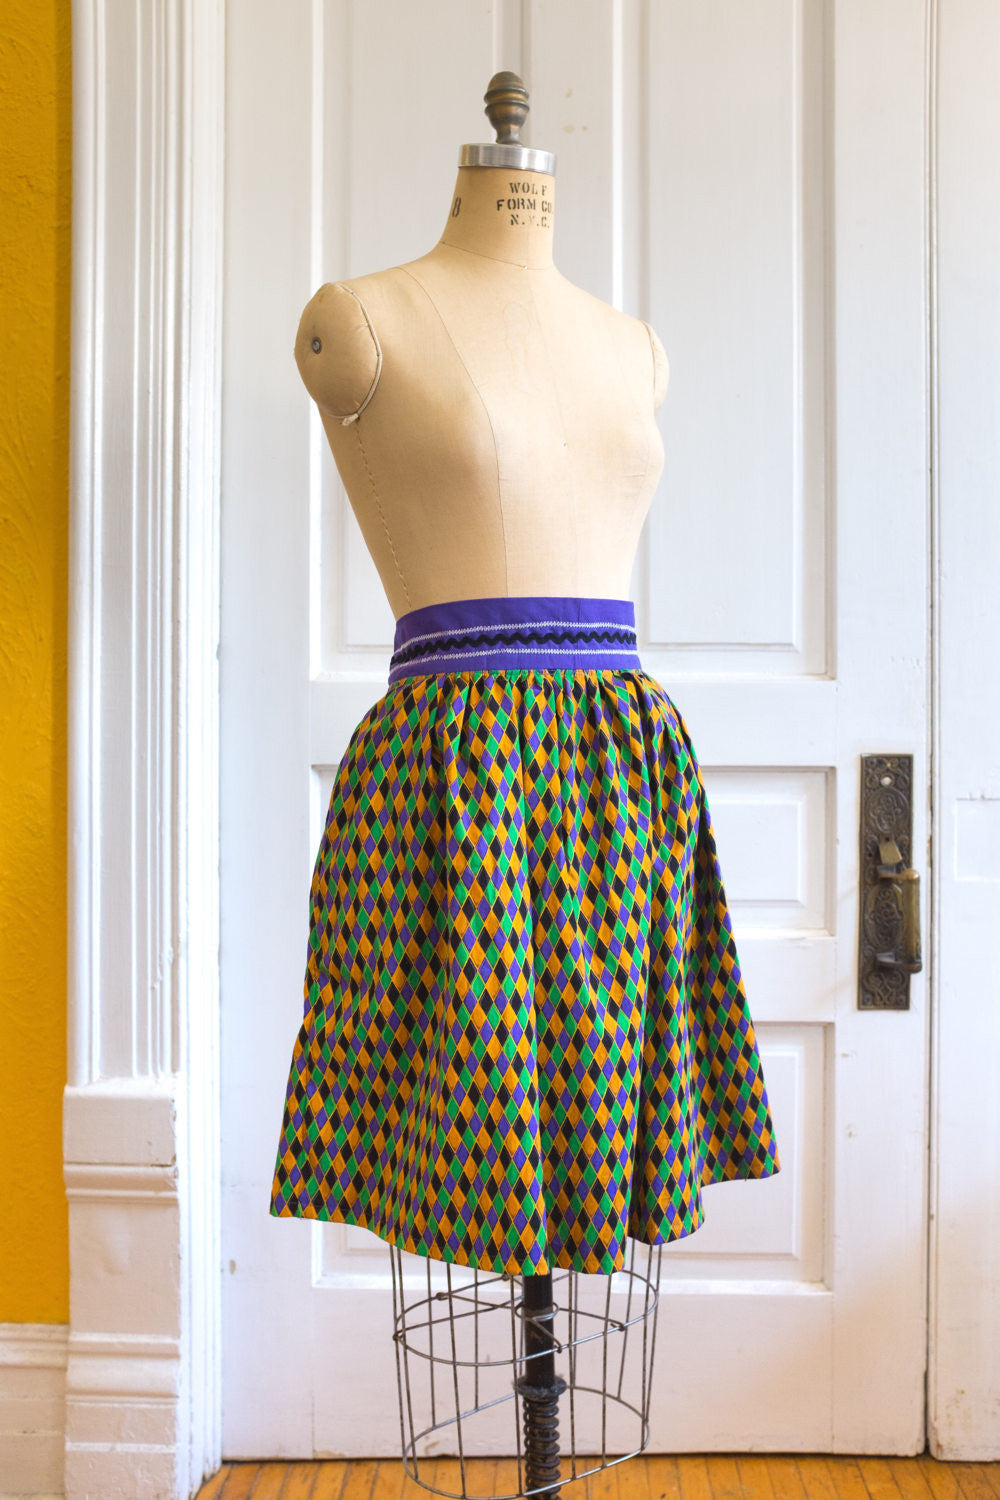 Mardi Gras Diamond Harlequin Carnival Dirndl Skirt | Ready to Ship US 12